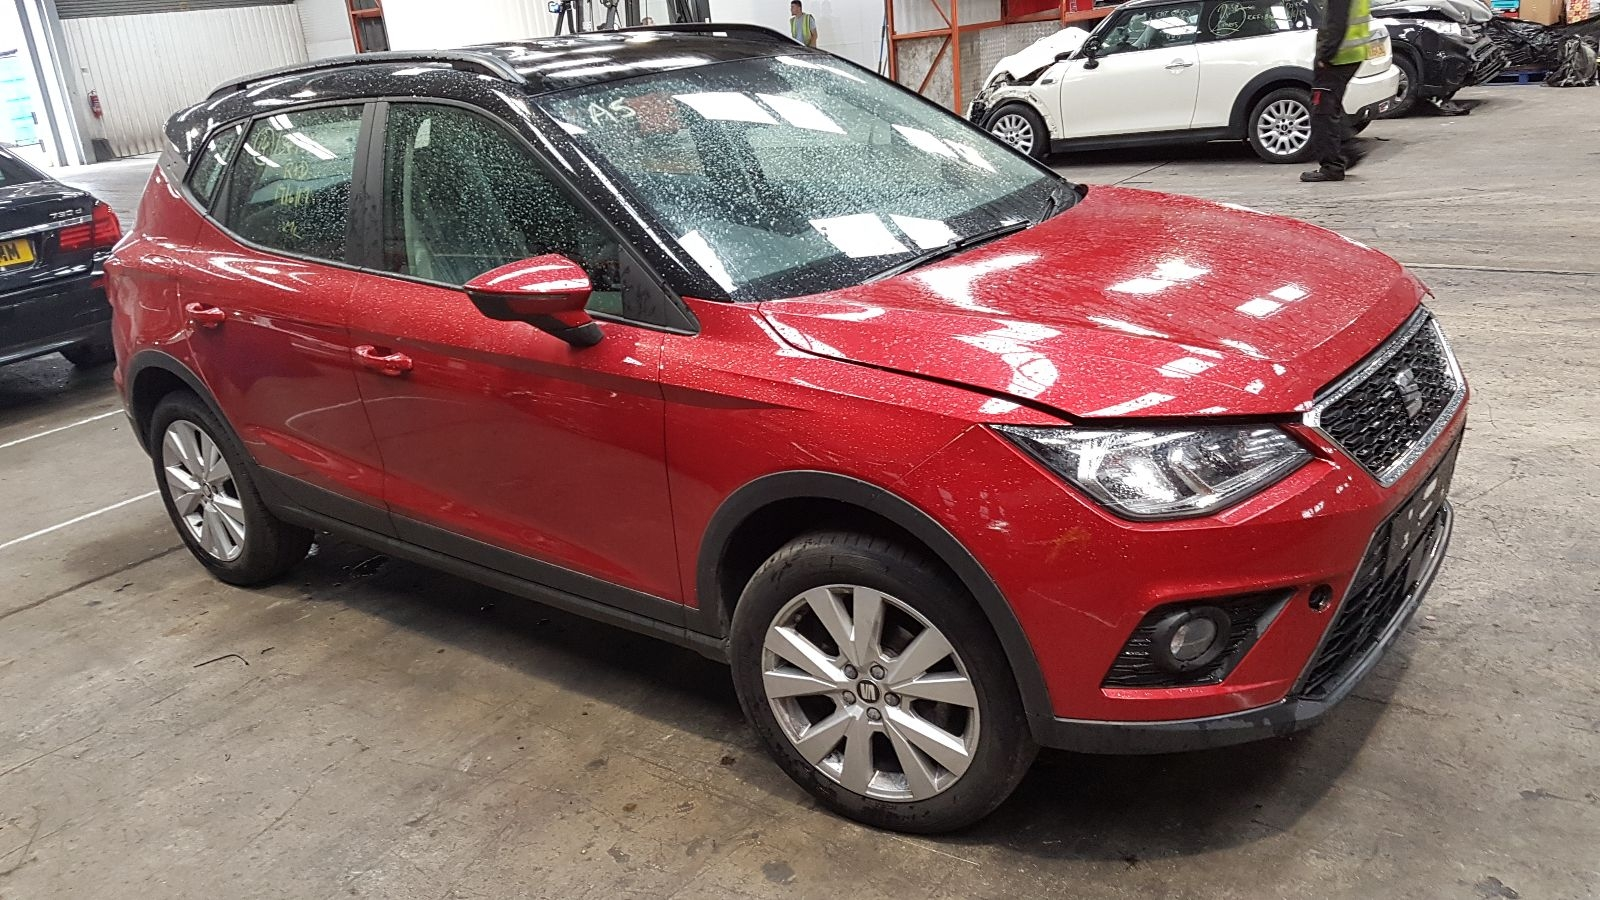 Image for a 2018 Seat Arona 1 Petrol CHZL Engine